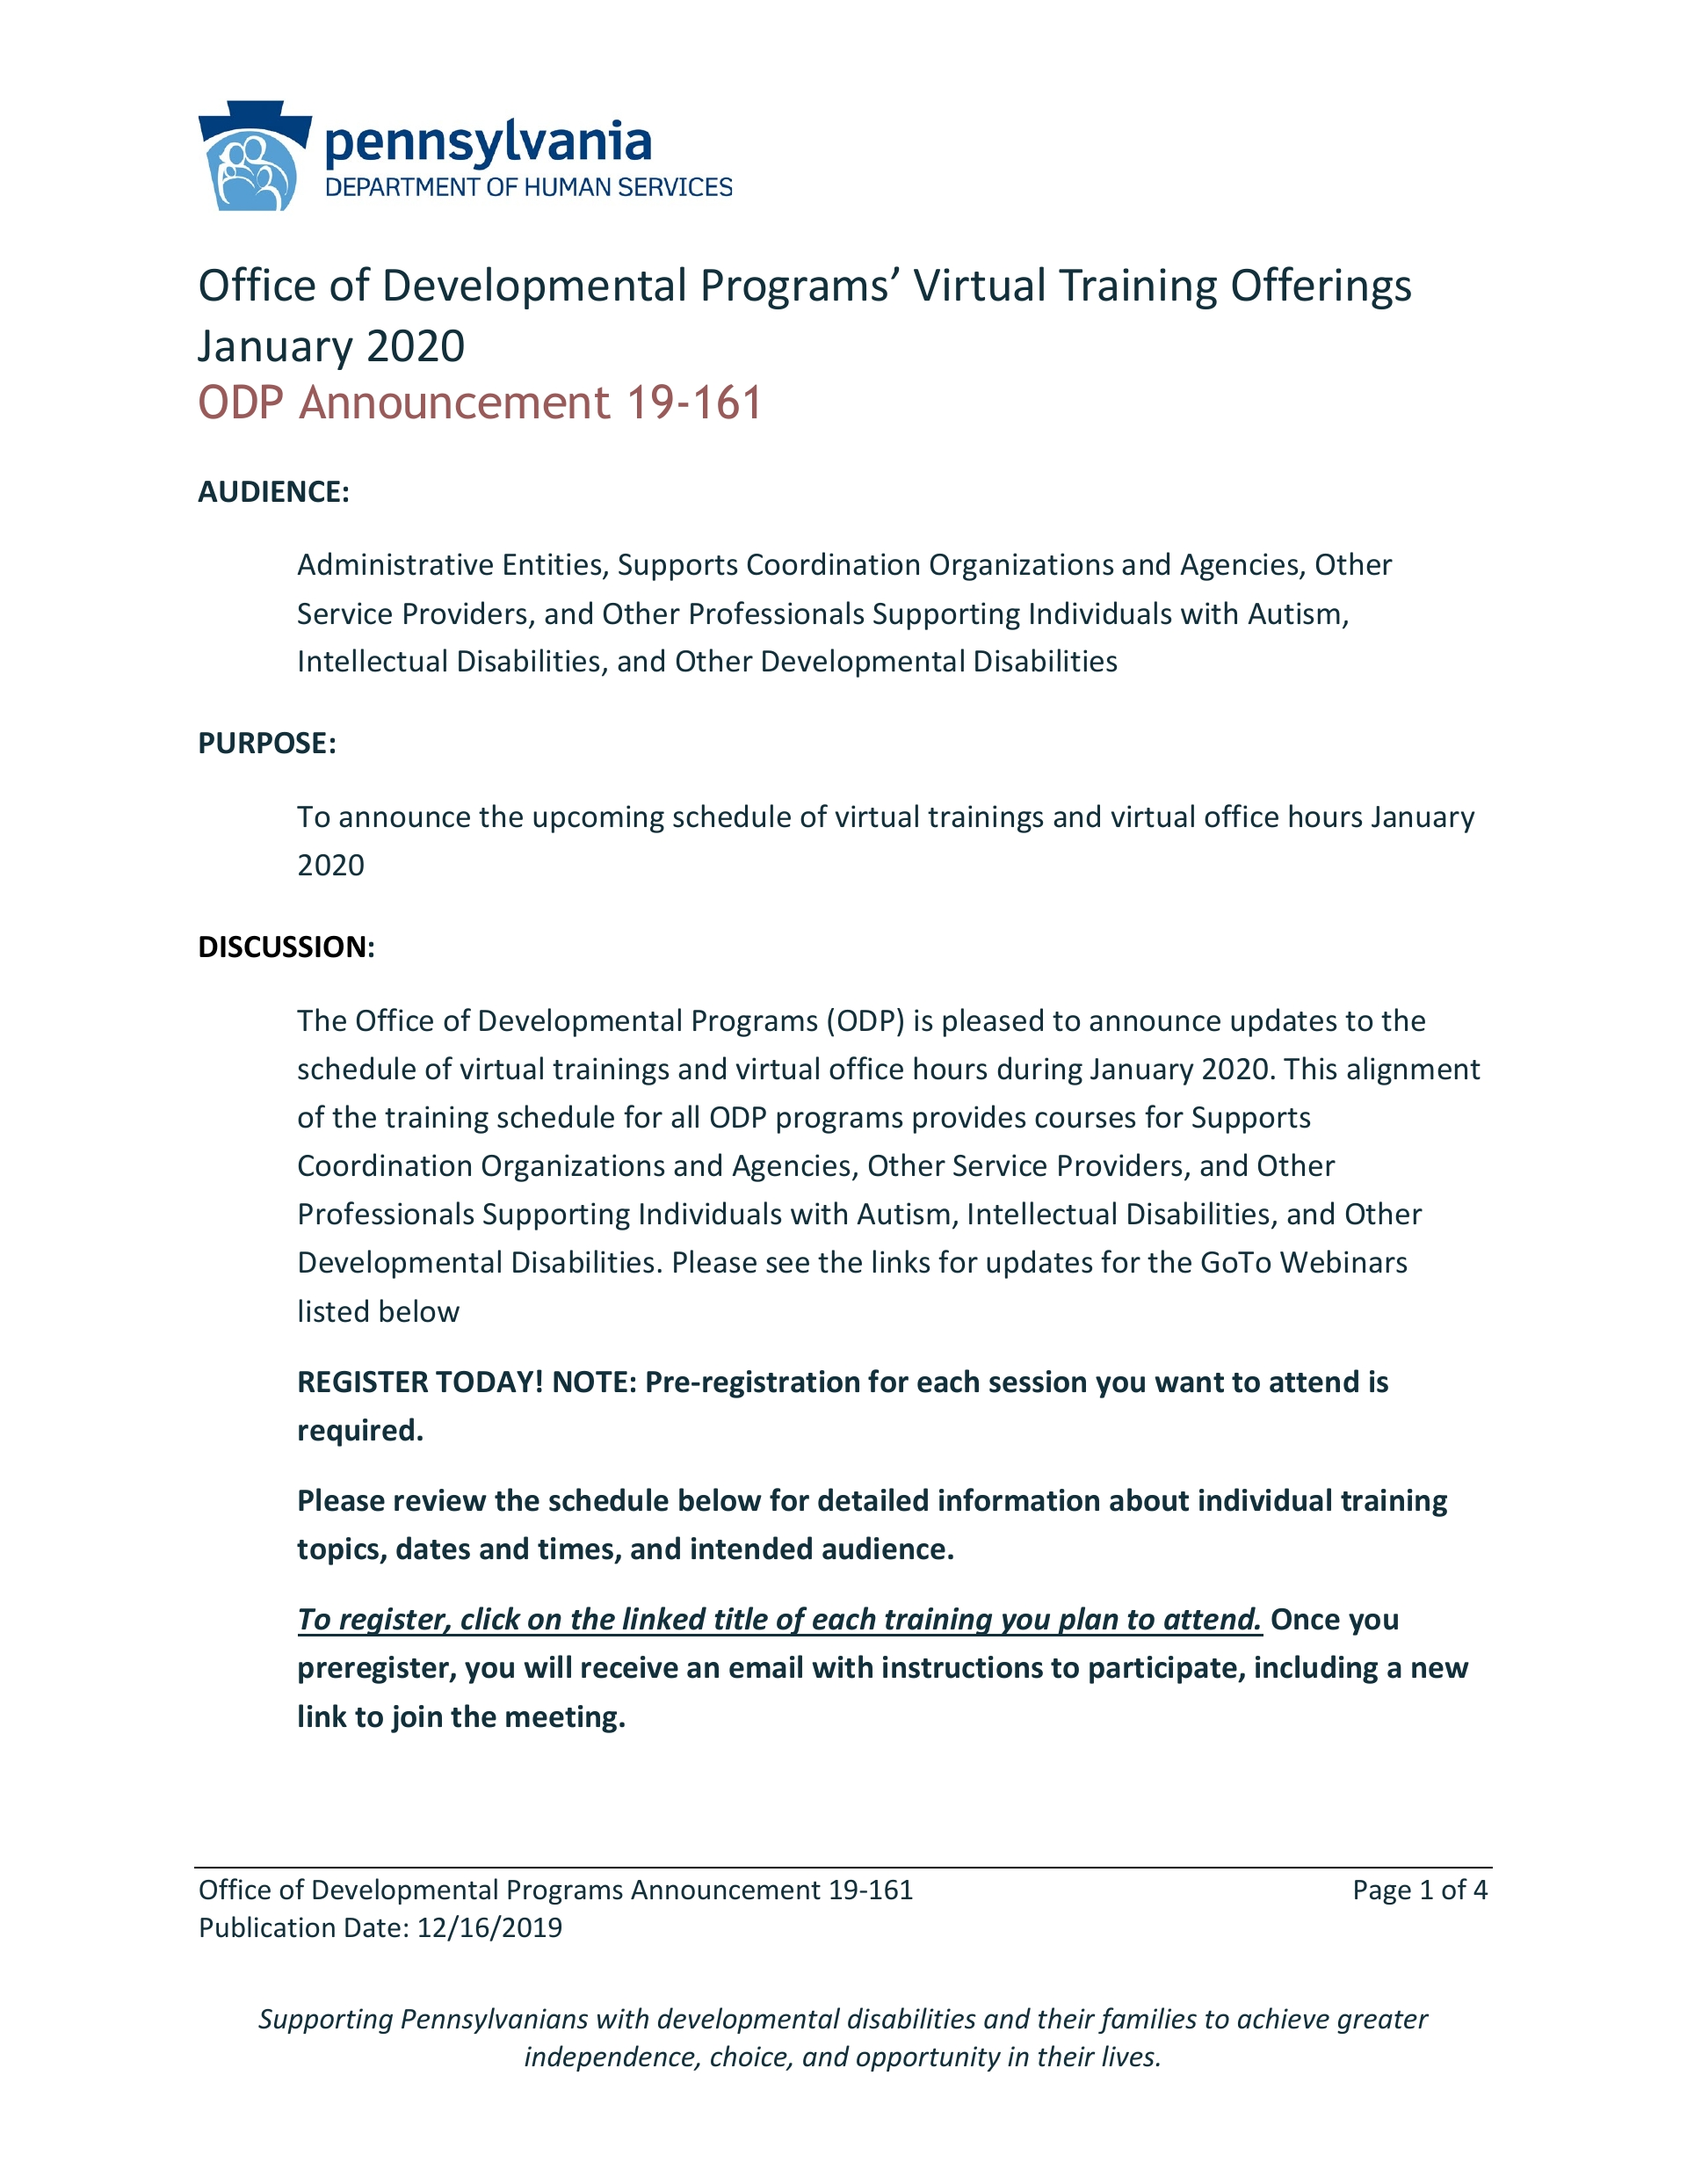 ODP VIRTUAL TRAININGS FOR JANUARY 2020